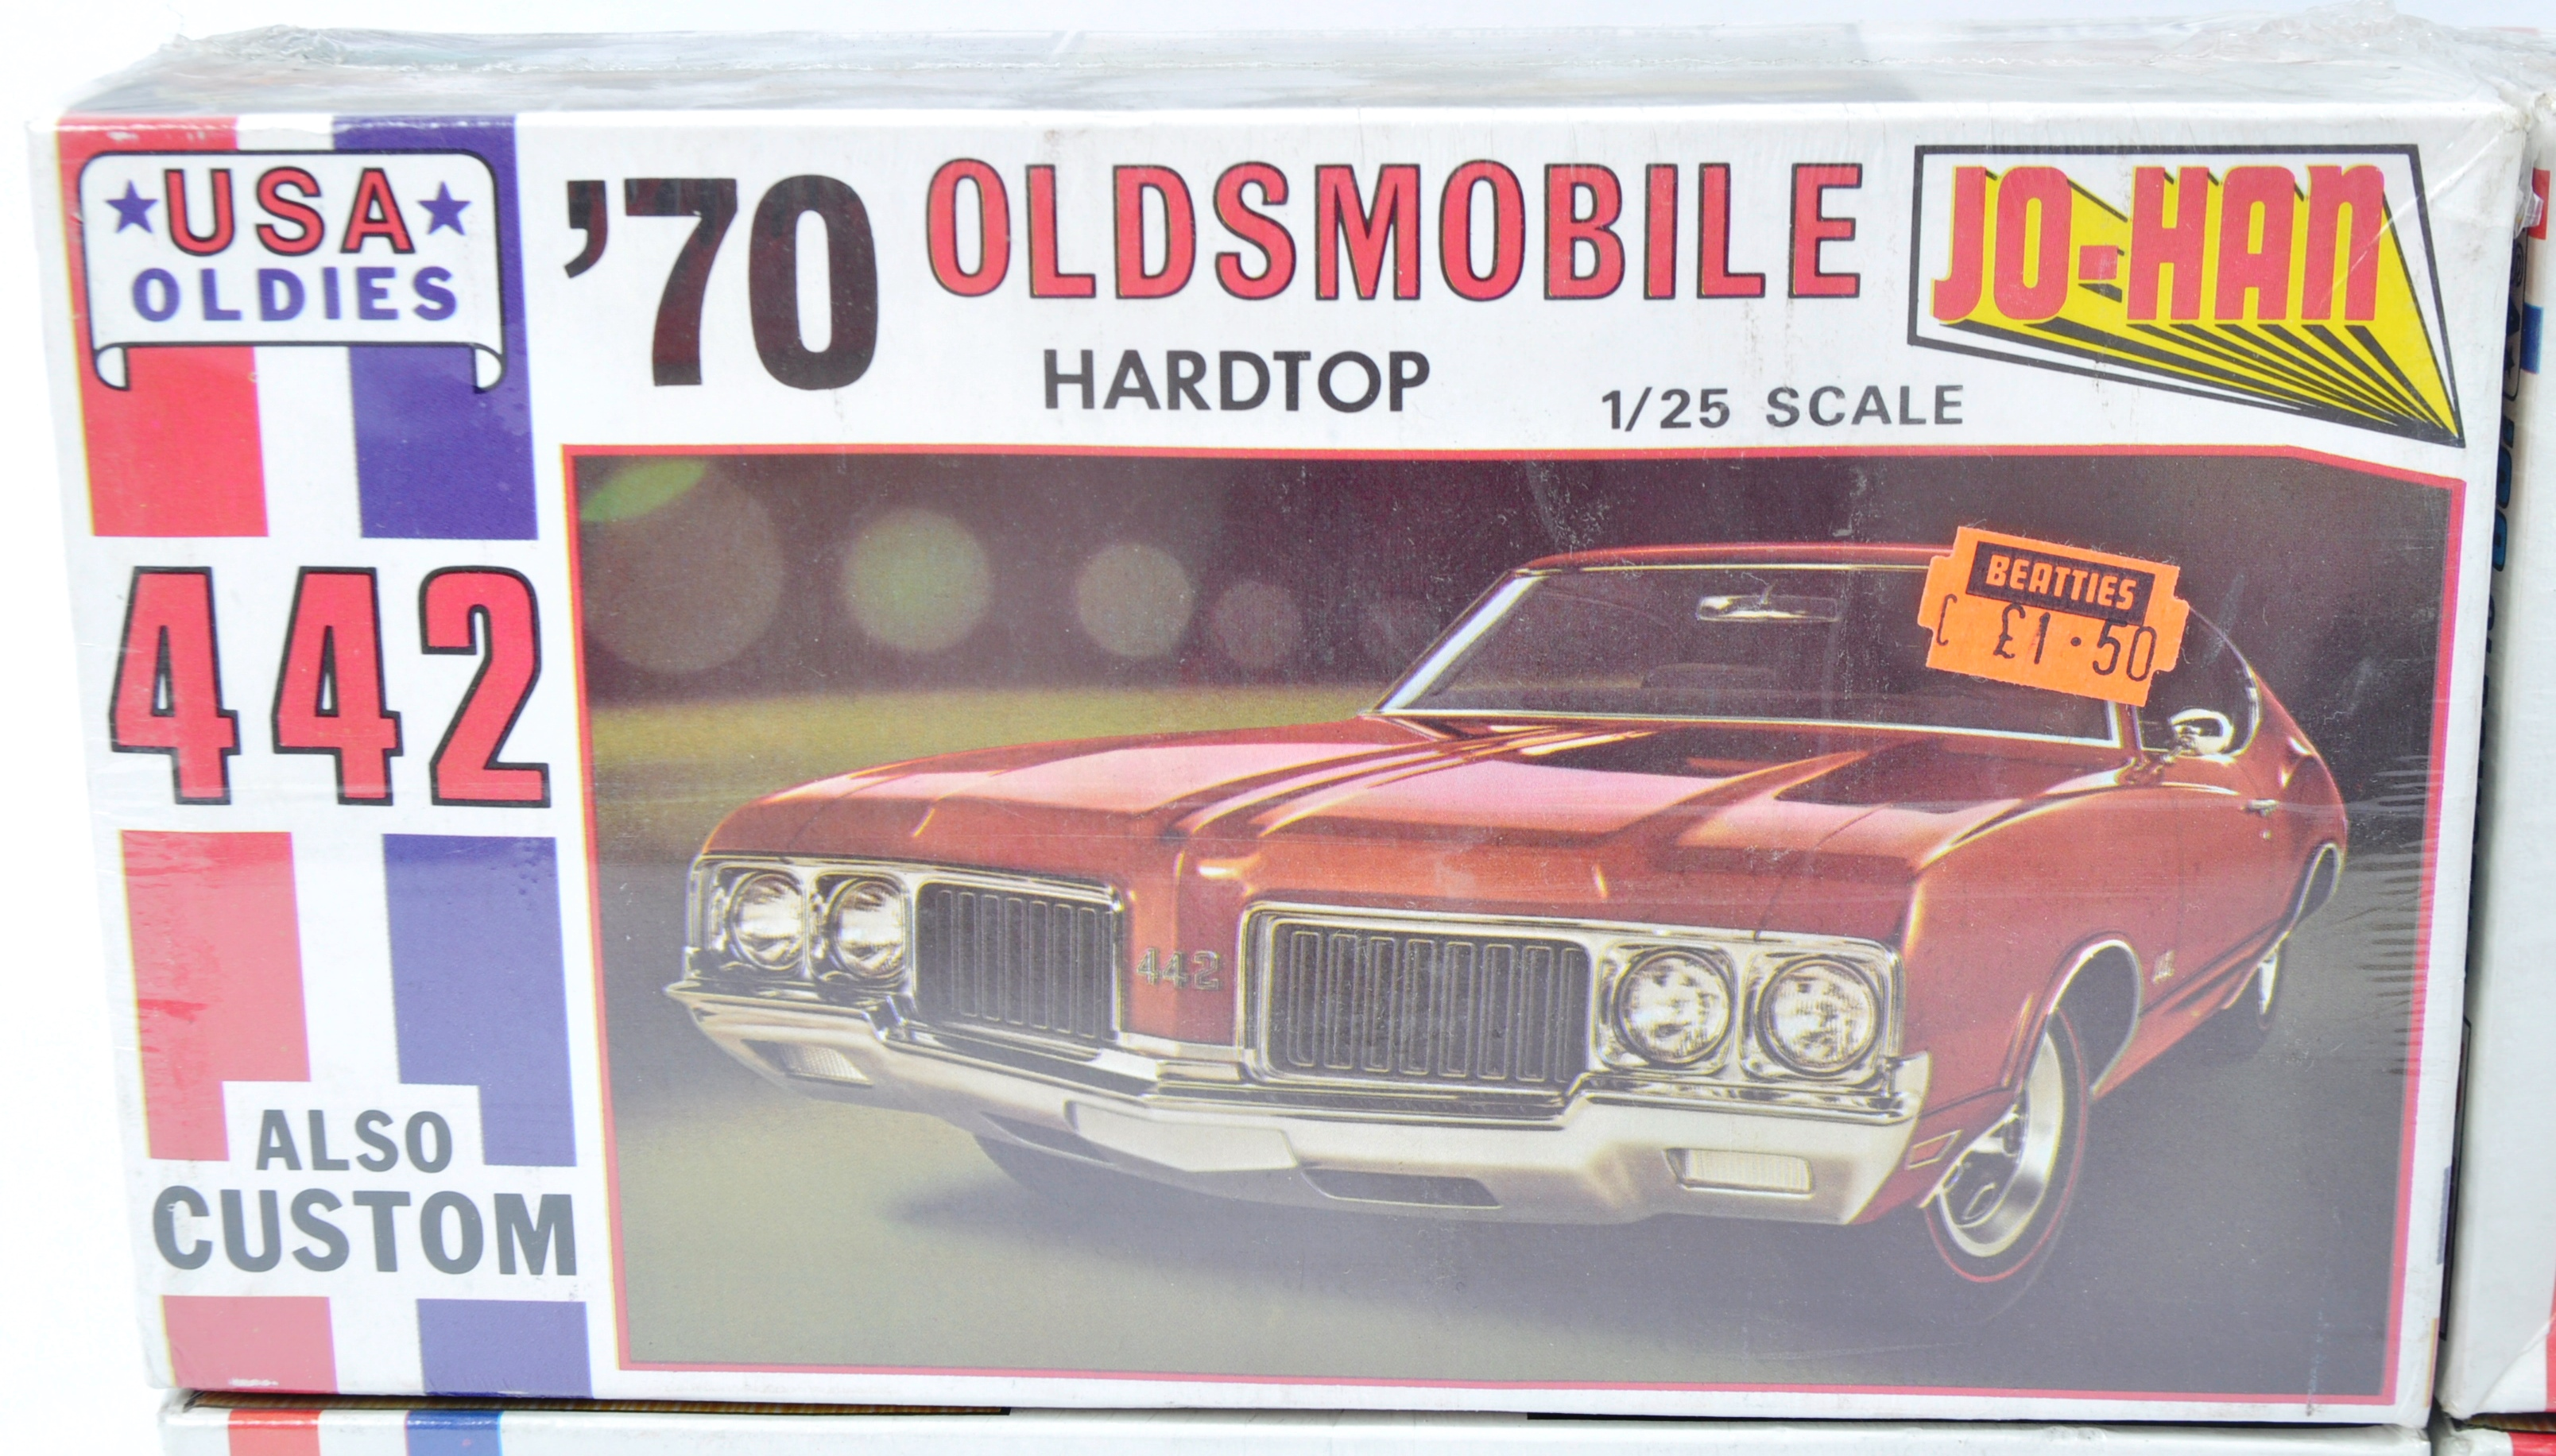 COLLECTION OF X4 VINTAGE JO-HAN FACTORY SEALED MODEL KITS - Image 6 of 7